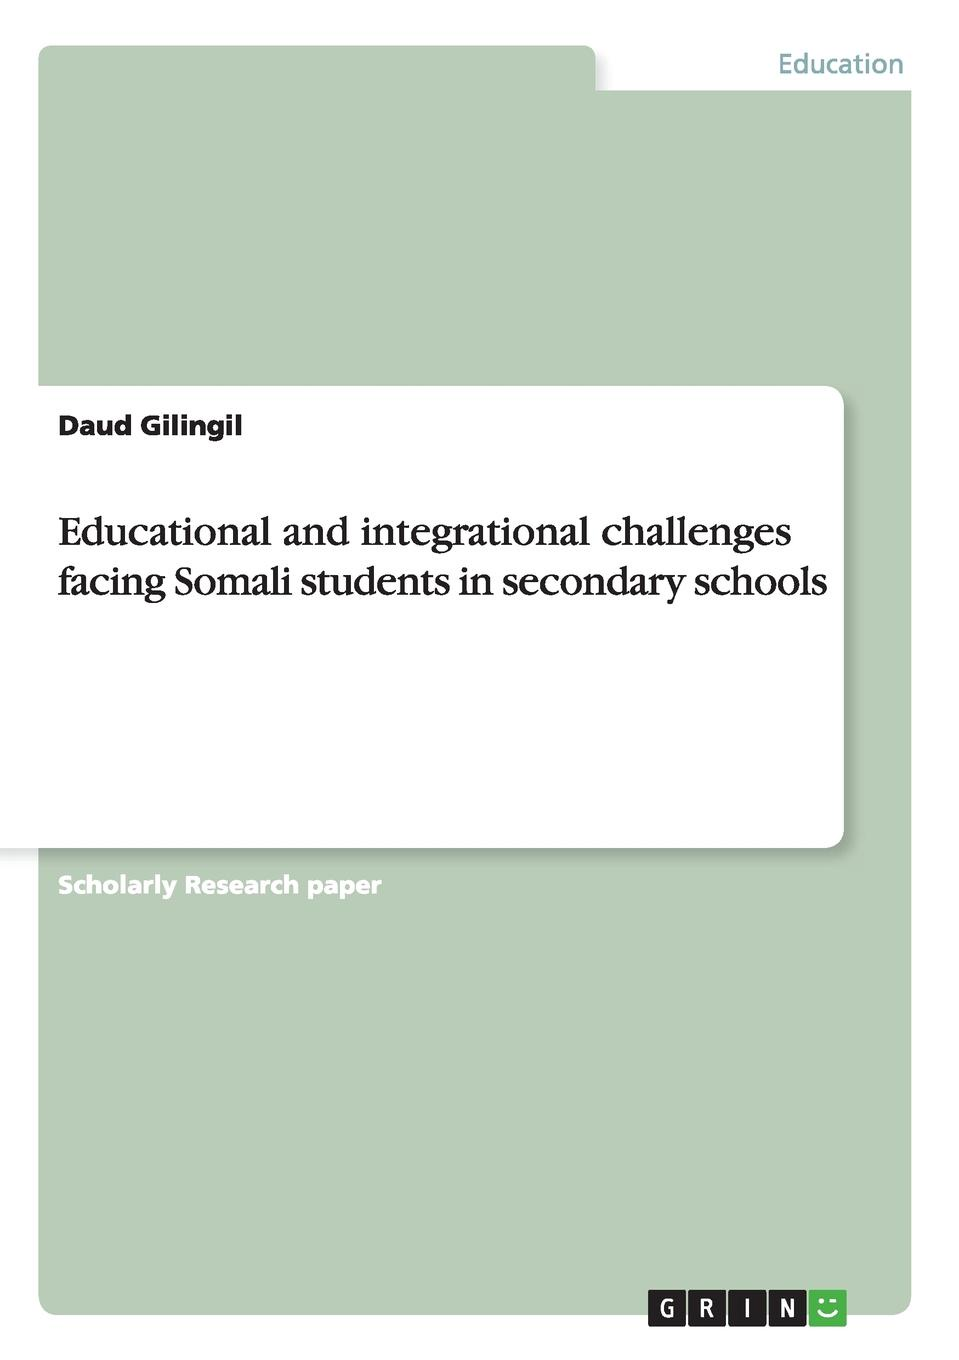 Daud Gilingil Educational and Integrational Challenges Facing Somali Students in Secondary Schools facing the modern